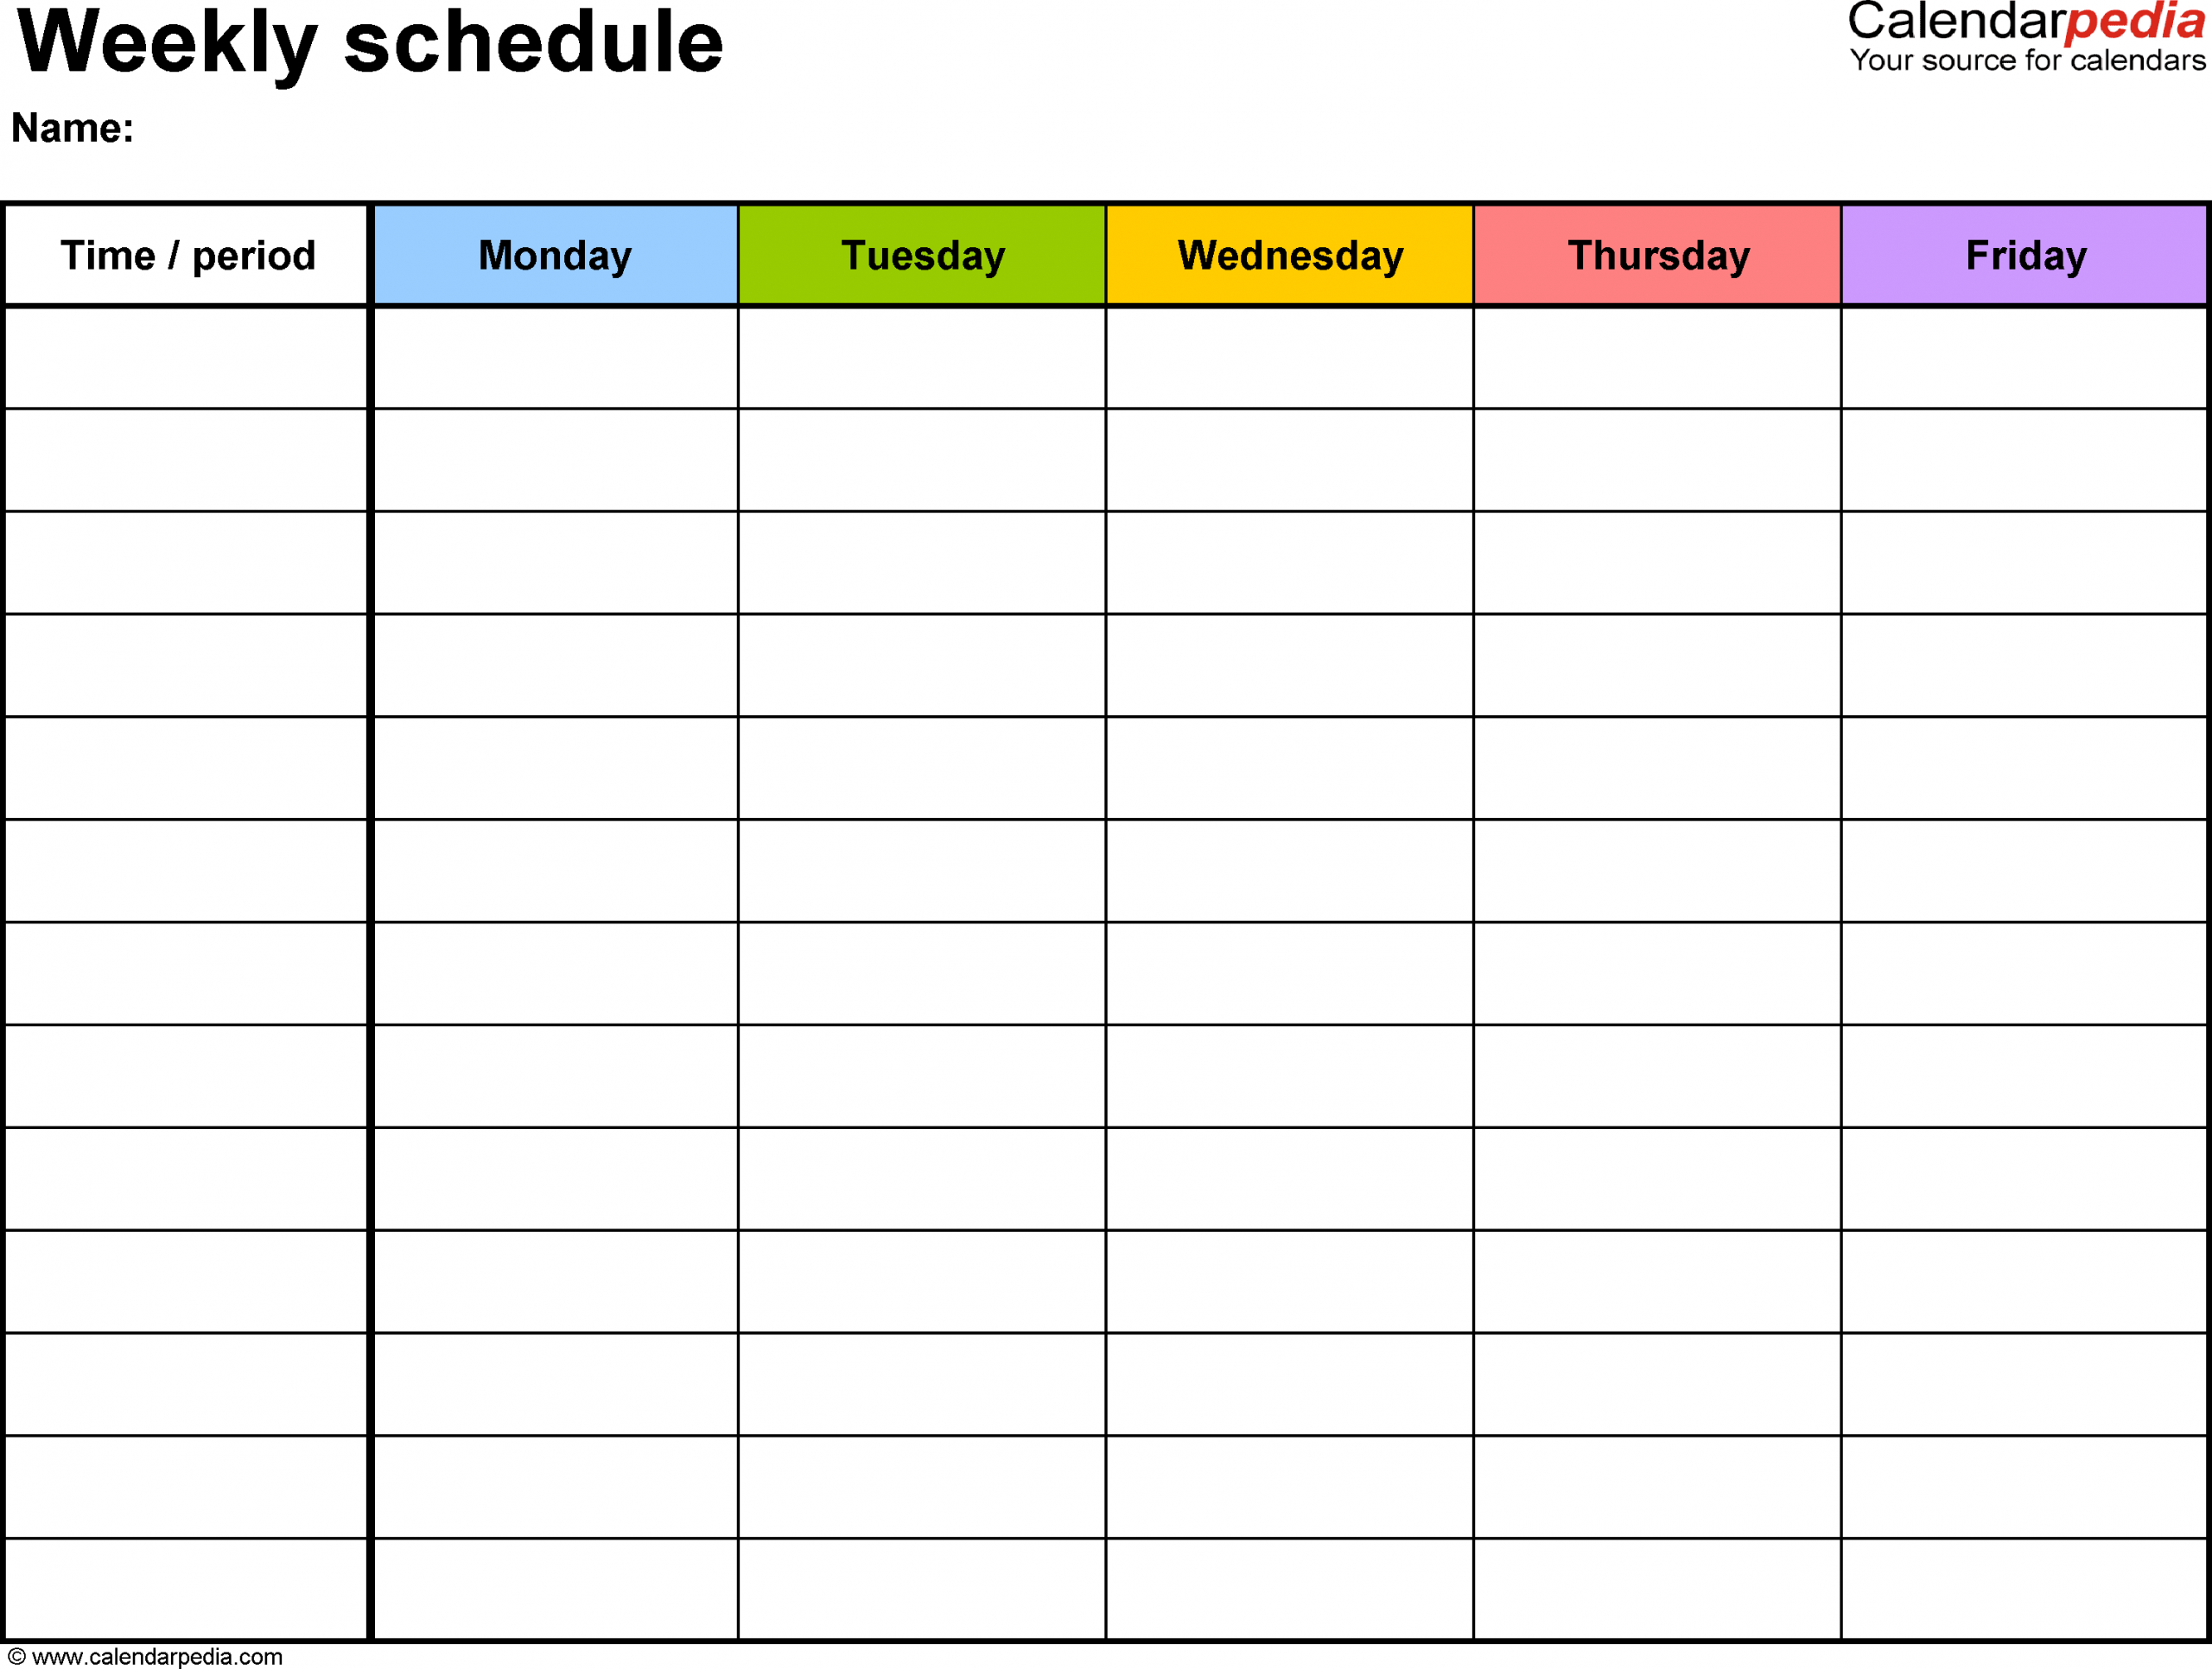 Weekly Schedule Template For Word Version 1: Landscape, 1 One Week Calendar Form